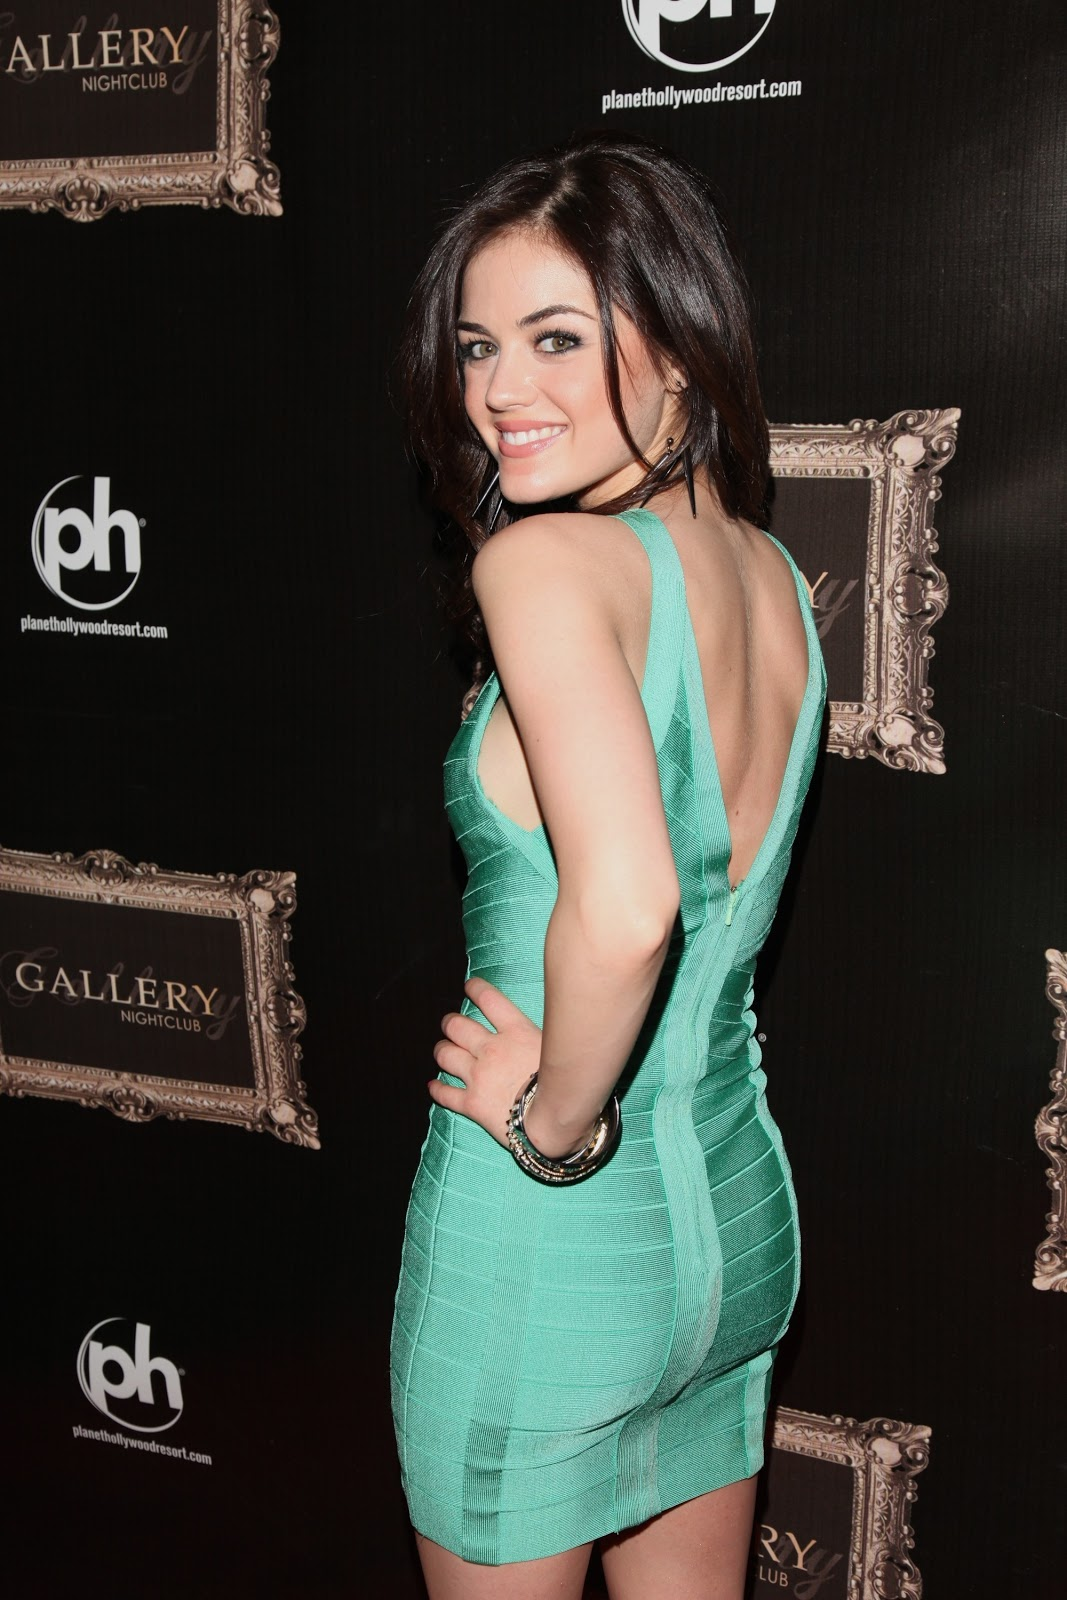 Waslese: Lucy Hale Hot Images 2012 HD